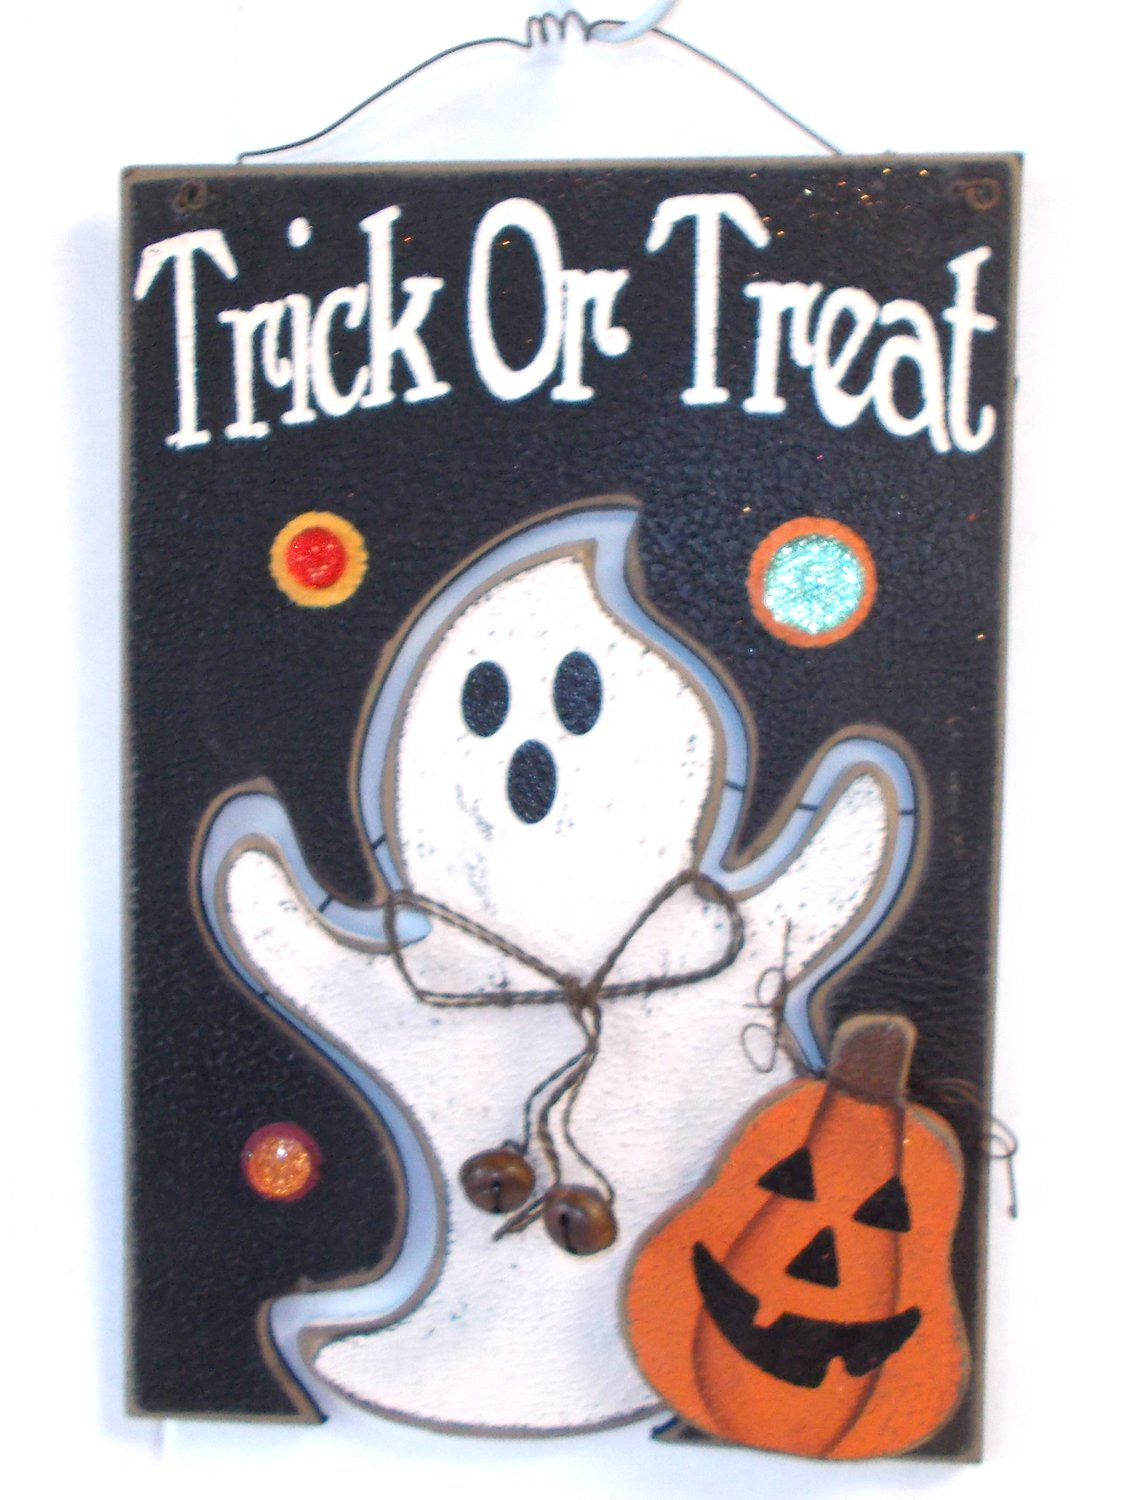 New Trick Or Treat Ghost Jack O Lantern Jeweled Sign Wall Decor u NWT Trick or Treat Sign with Ghost and Jack O Lantern with Red Green and Gold Jewels